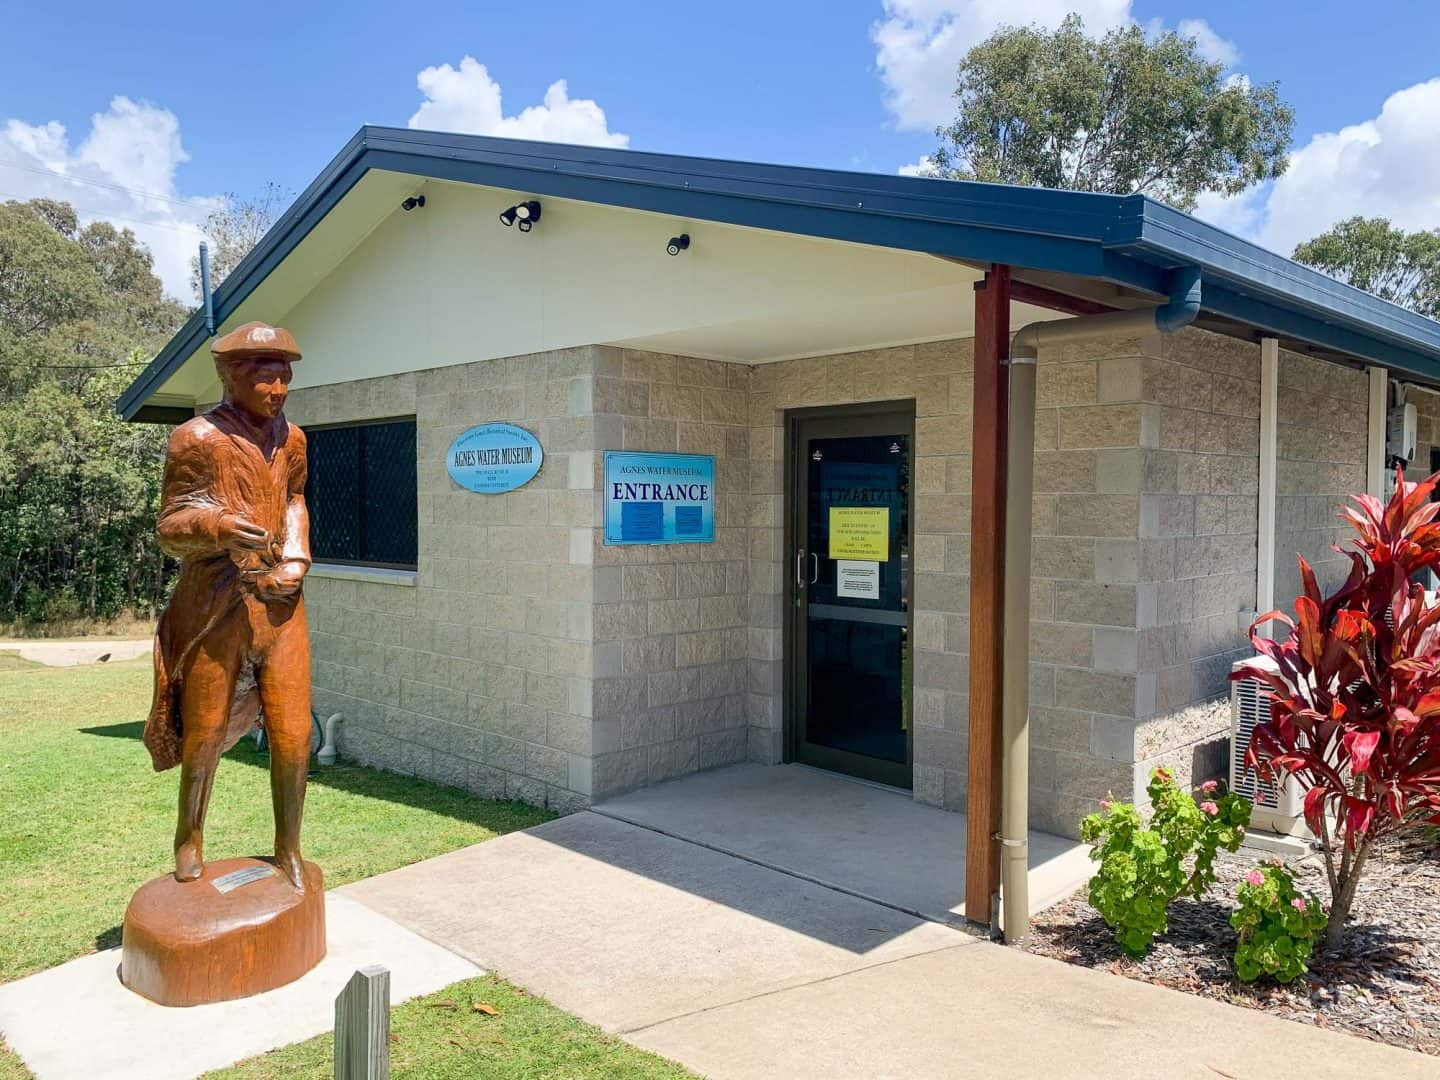 agnes water, agnes waters, things to do in agnes waters, hings to do in agnes water, surfing agnes water, seventeen seventy queensland, seventeen seventy camping, seventeen seventy australia, seventeen seventy, agnes waters things to do, agnes waters map, agnes waters caravan park, agnes waters beach, agnes waters accommodation, agnes water surfing, agnes water surf cam, agnes water queensland, agnes water qld, agnes water caravan park, agnes water camping, agnes water beach, camping ground agnes water, agnes water museum